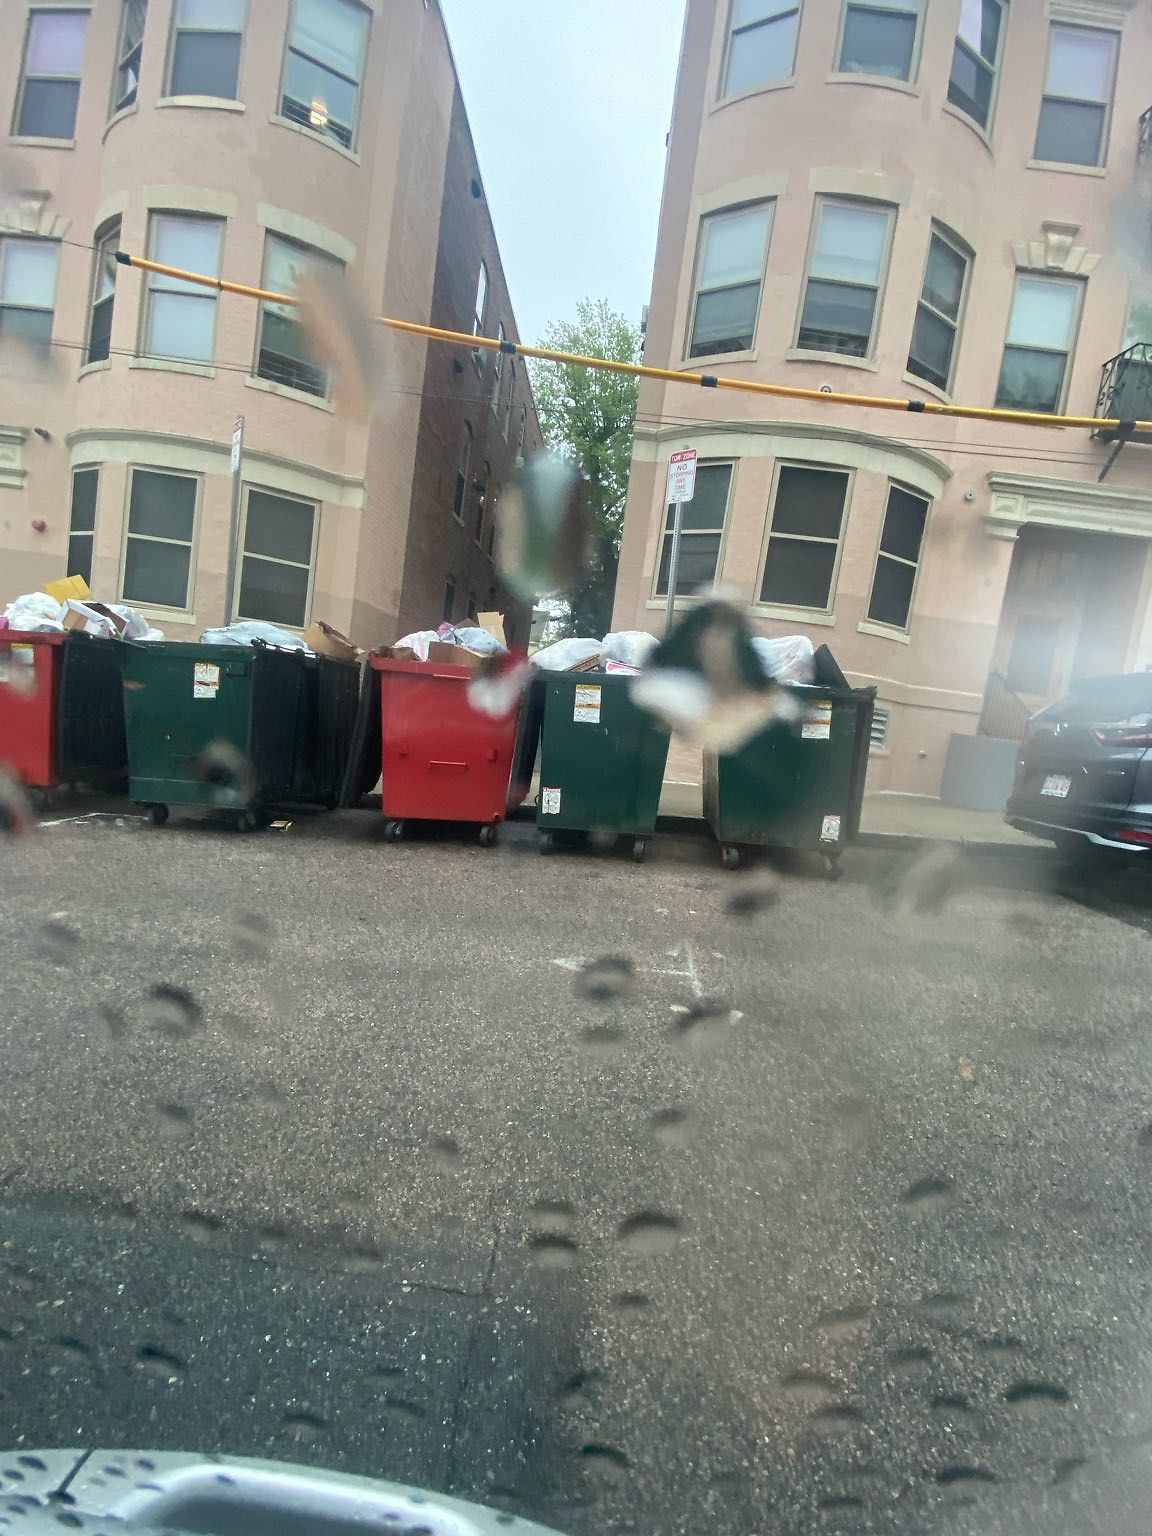 So recently signs were put up on a very tight street parking wise..no parking between 7am-noon on tuesdays. These trash dumpsters are put out Monday morning and will remain till Wednesday afternoon. It isn't fair, especially in the heat of the…